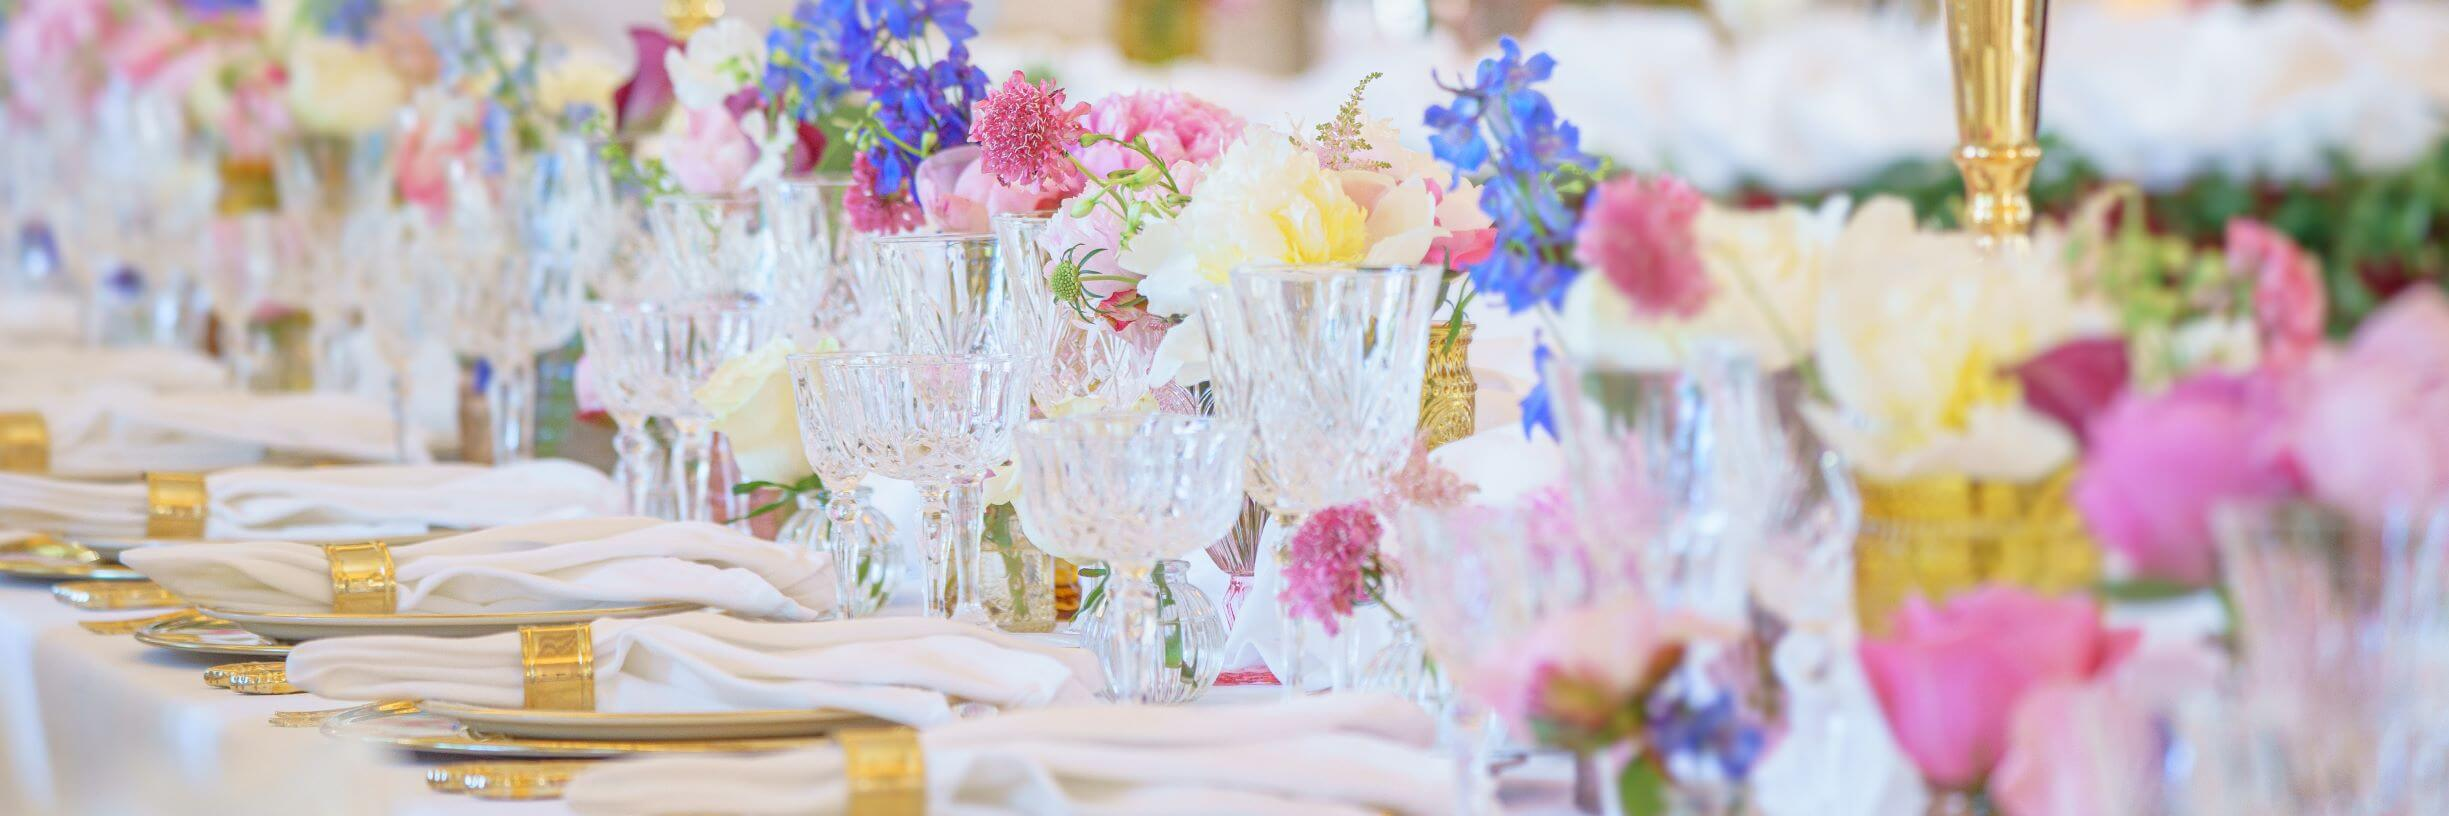 How To Dress Up Your Reception Tables